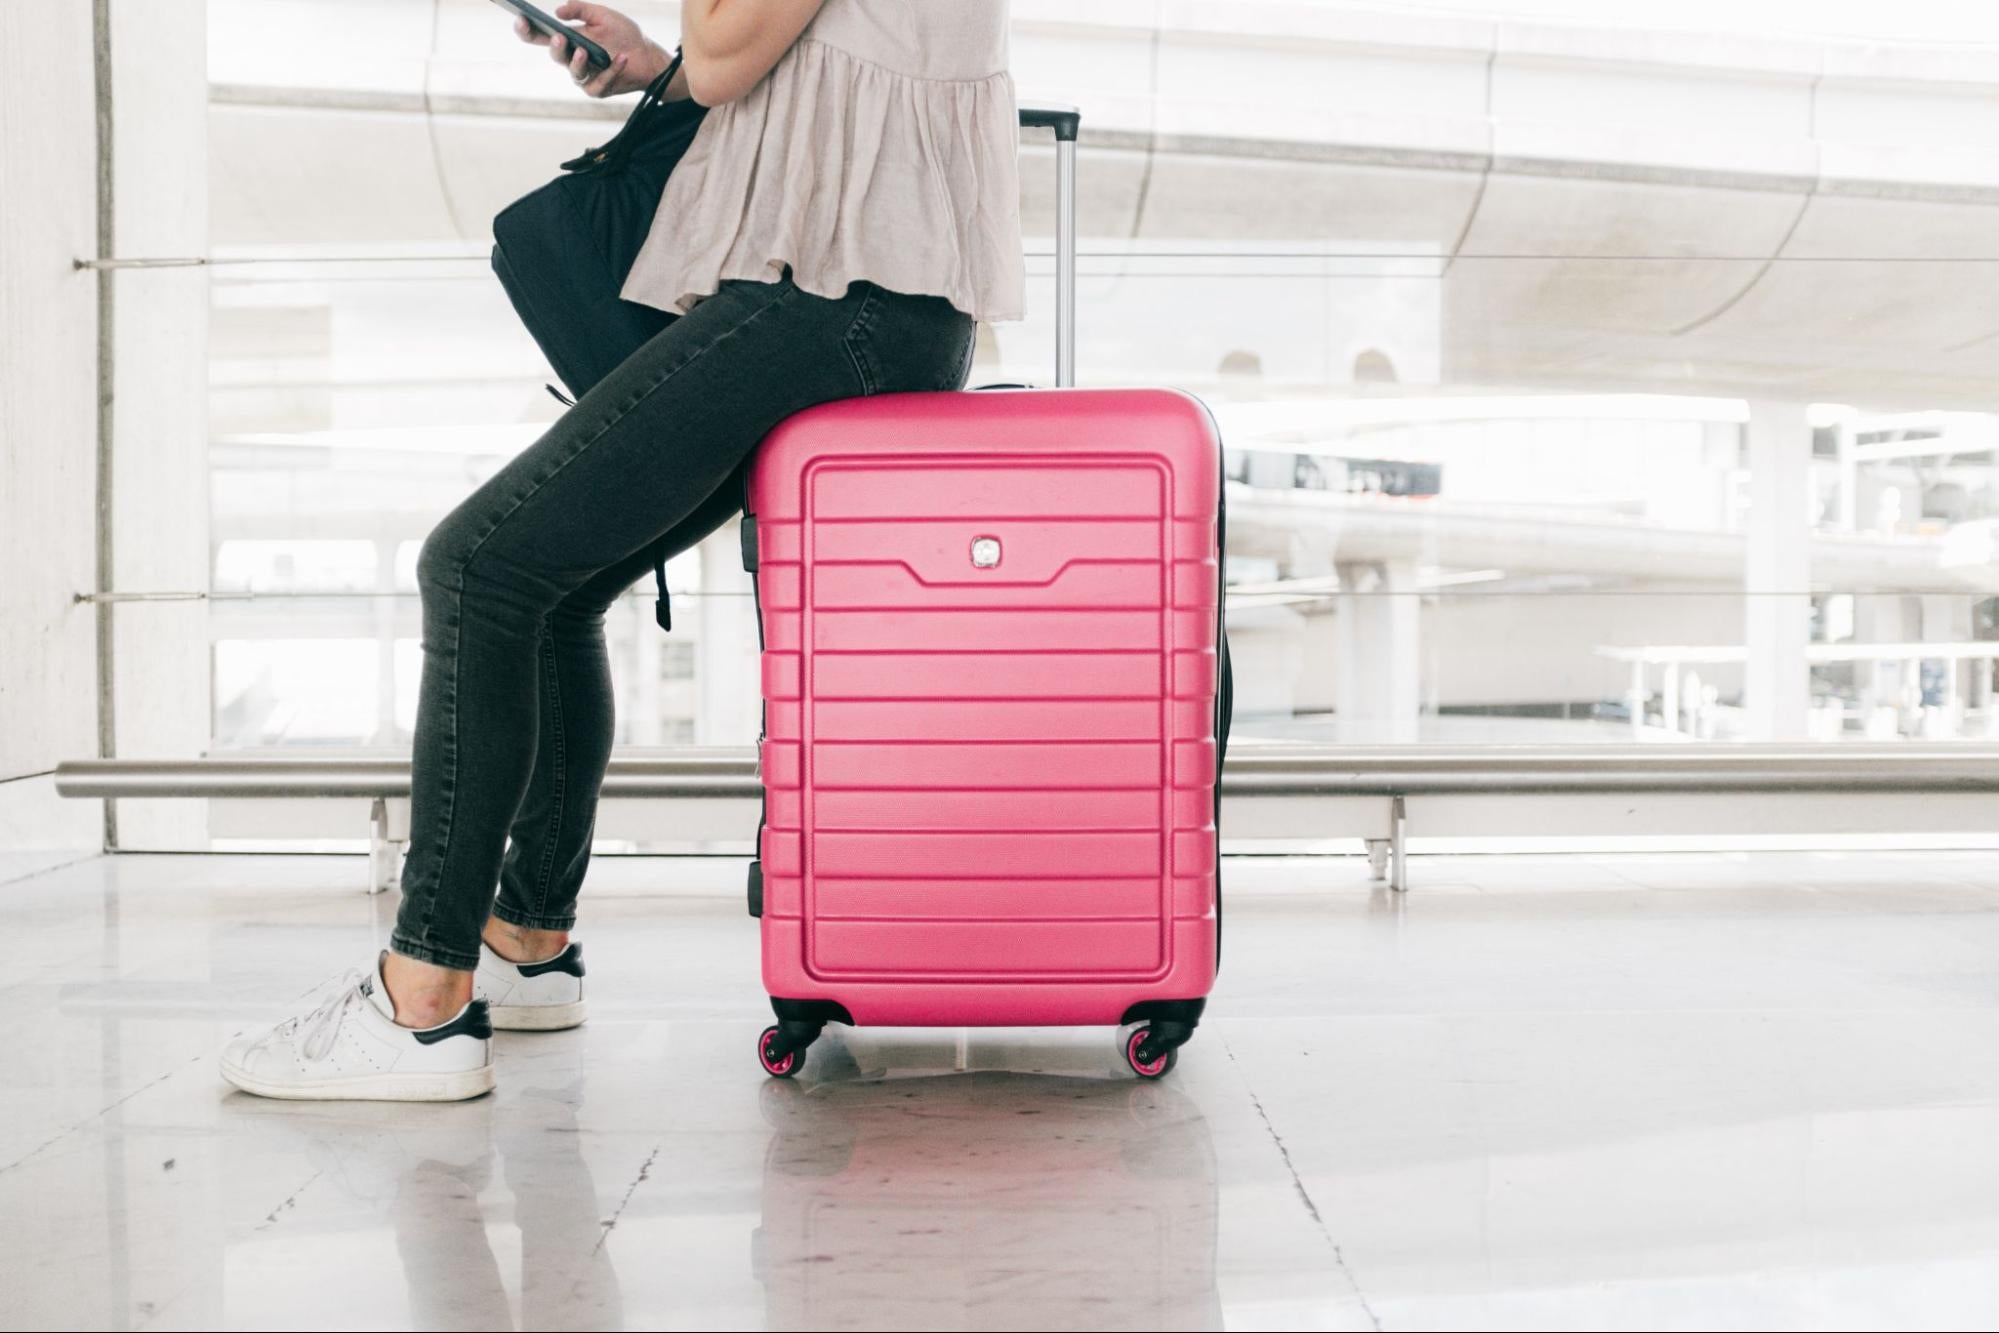 Cropped image of a woman sitting on a pink suitcase